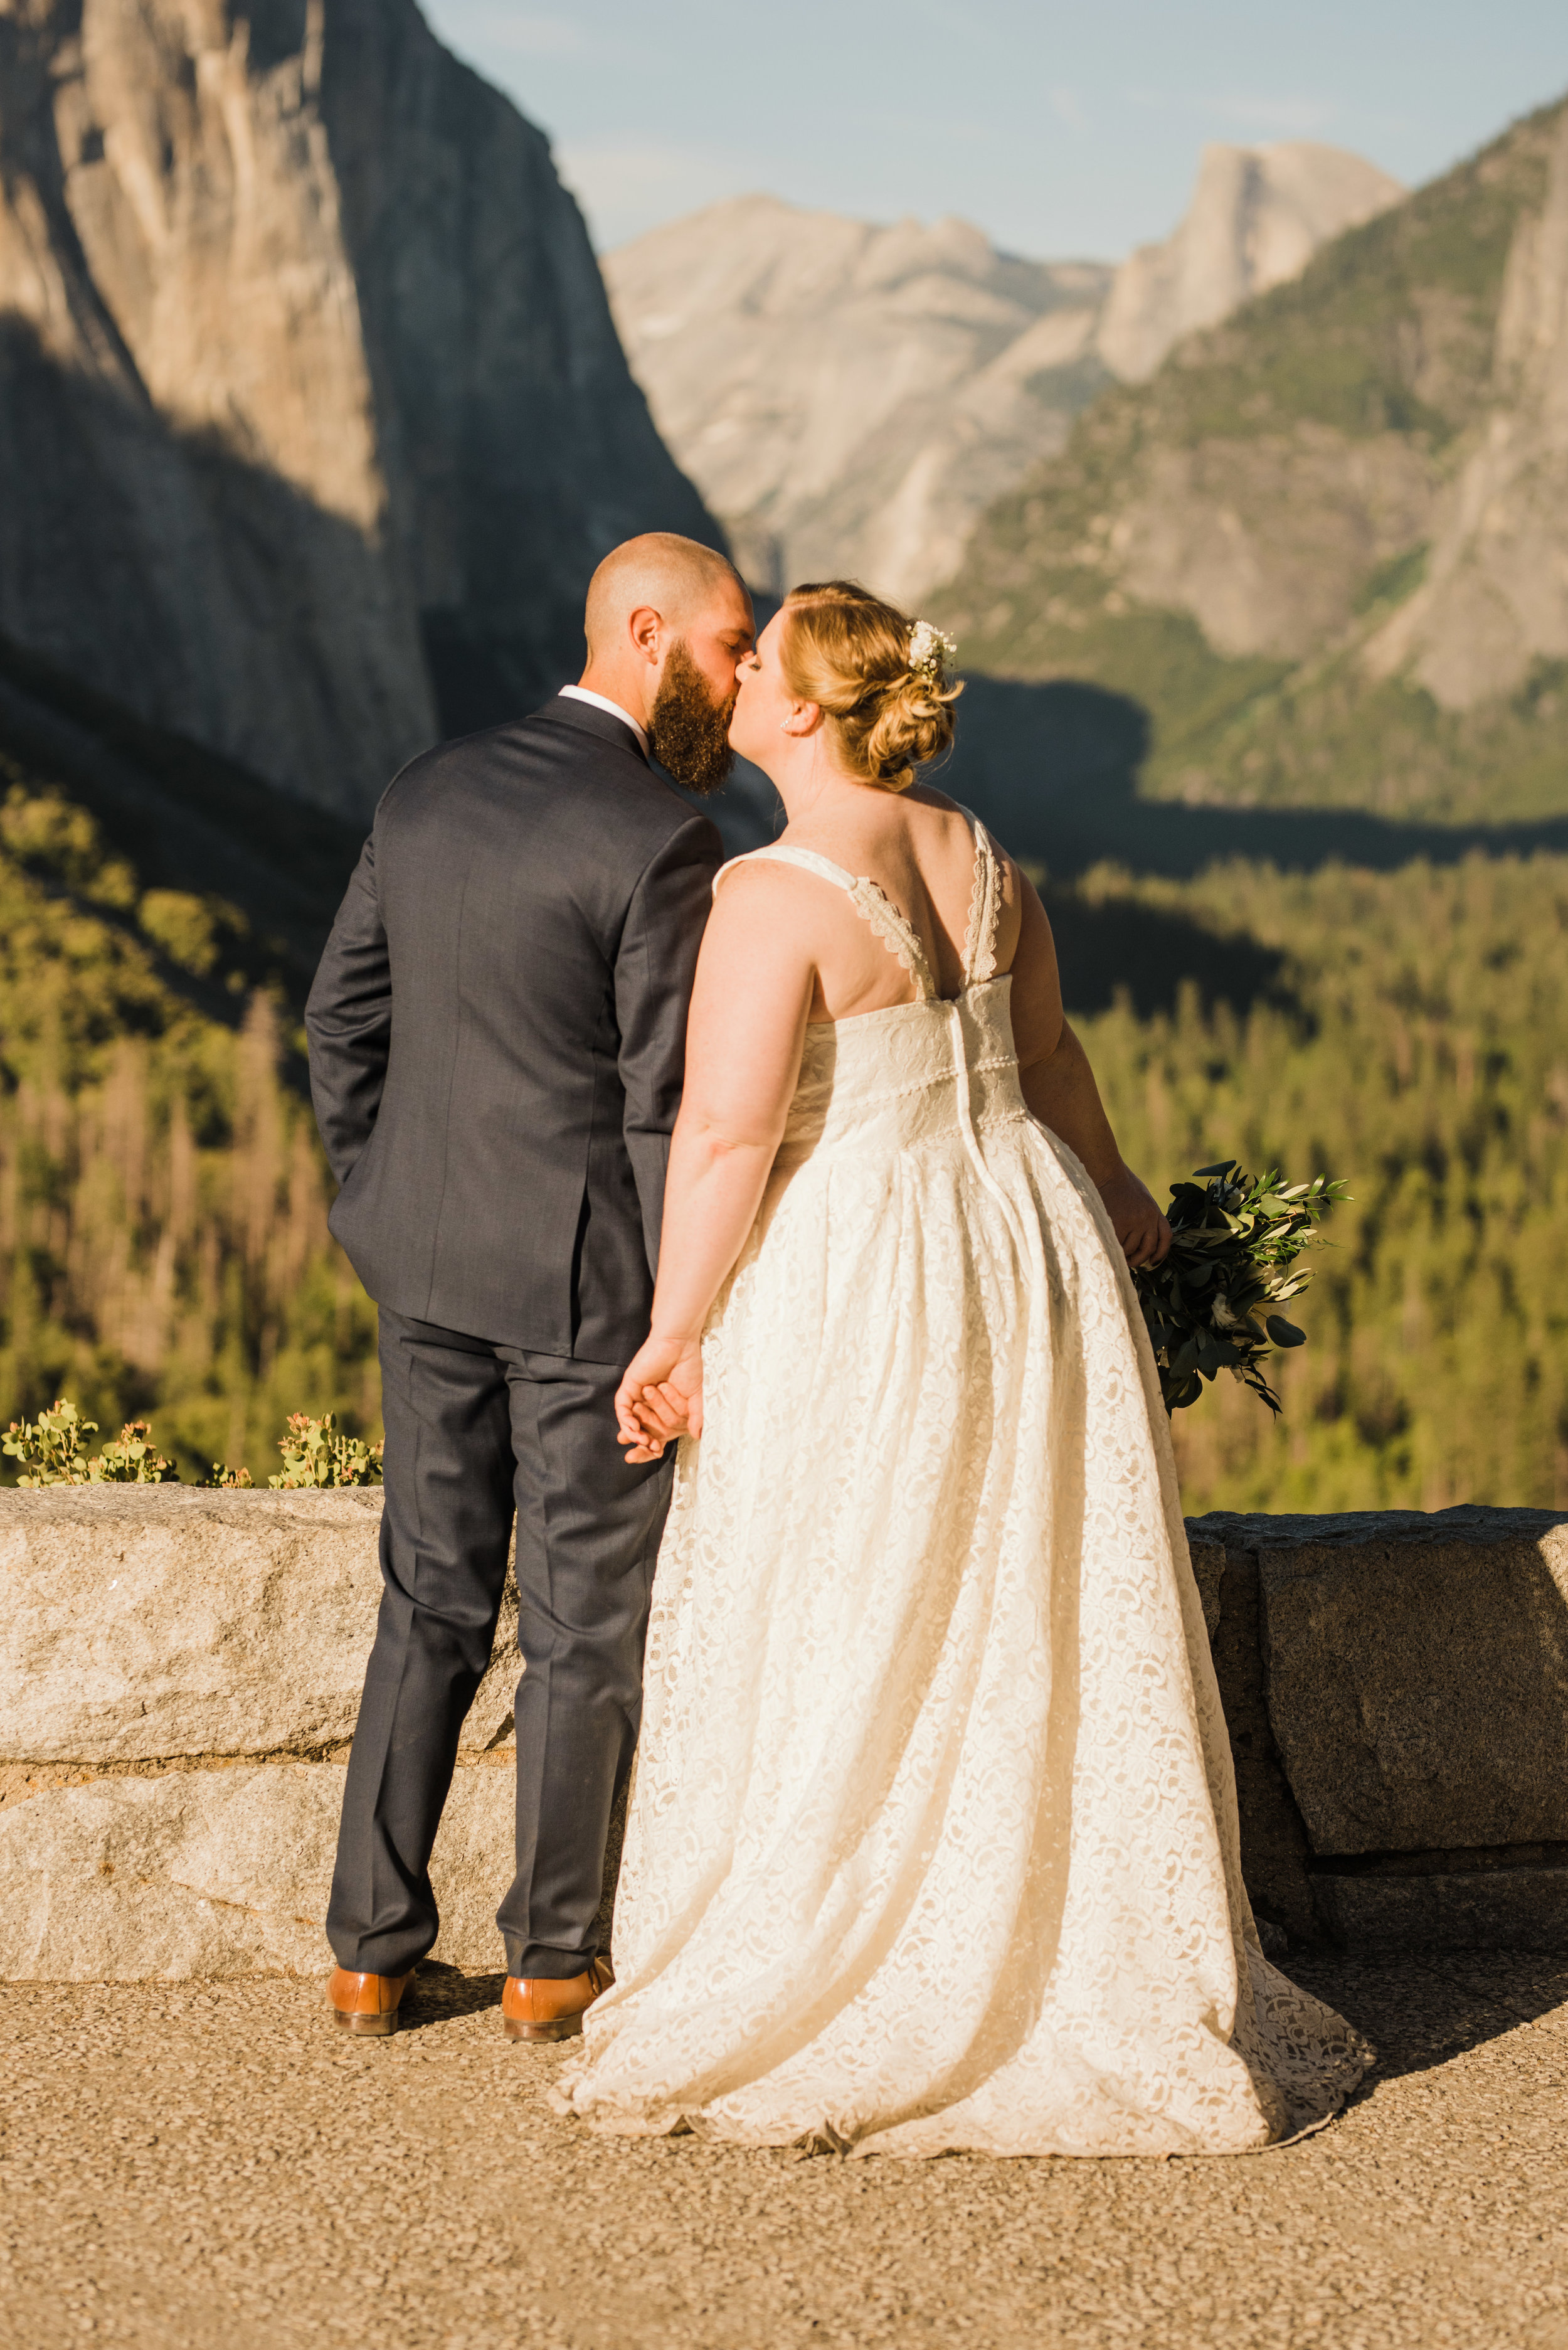 Bride and groom kiss in front of El Capitan and Half Dome in Yosemite National Park in the same spot that Ansel Adam once photographed: Tunnel View